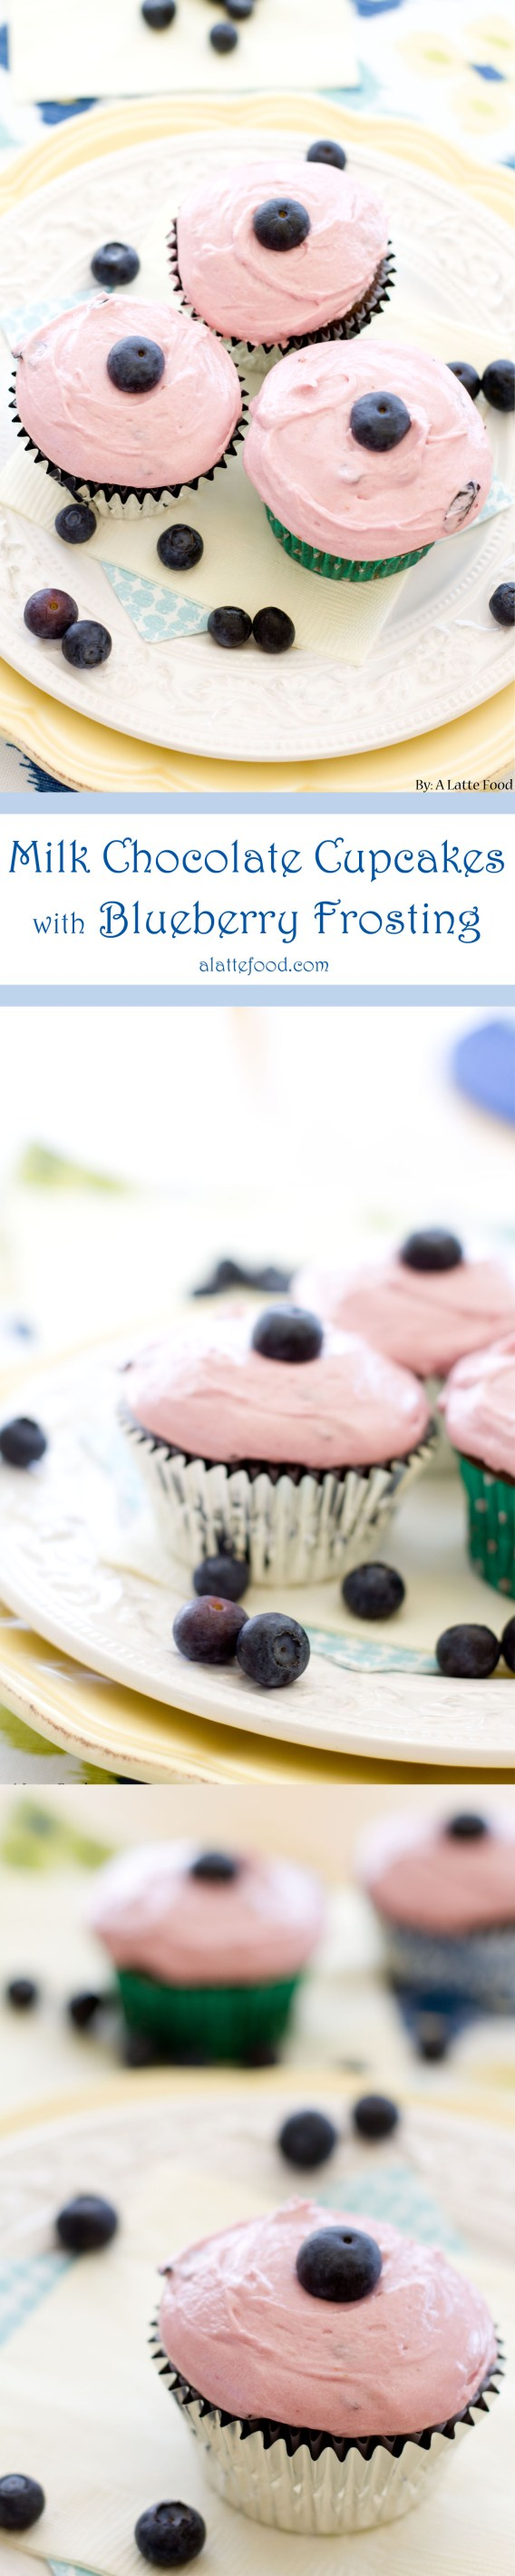 Milk Chocolate Cupcakes with Blueberry Frosting   A Latte Food